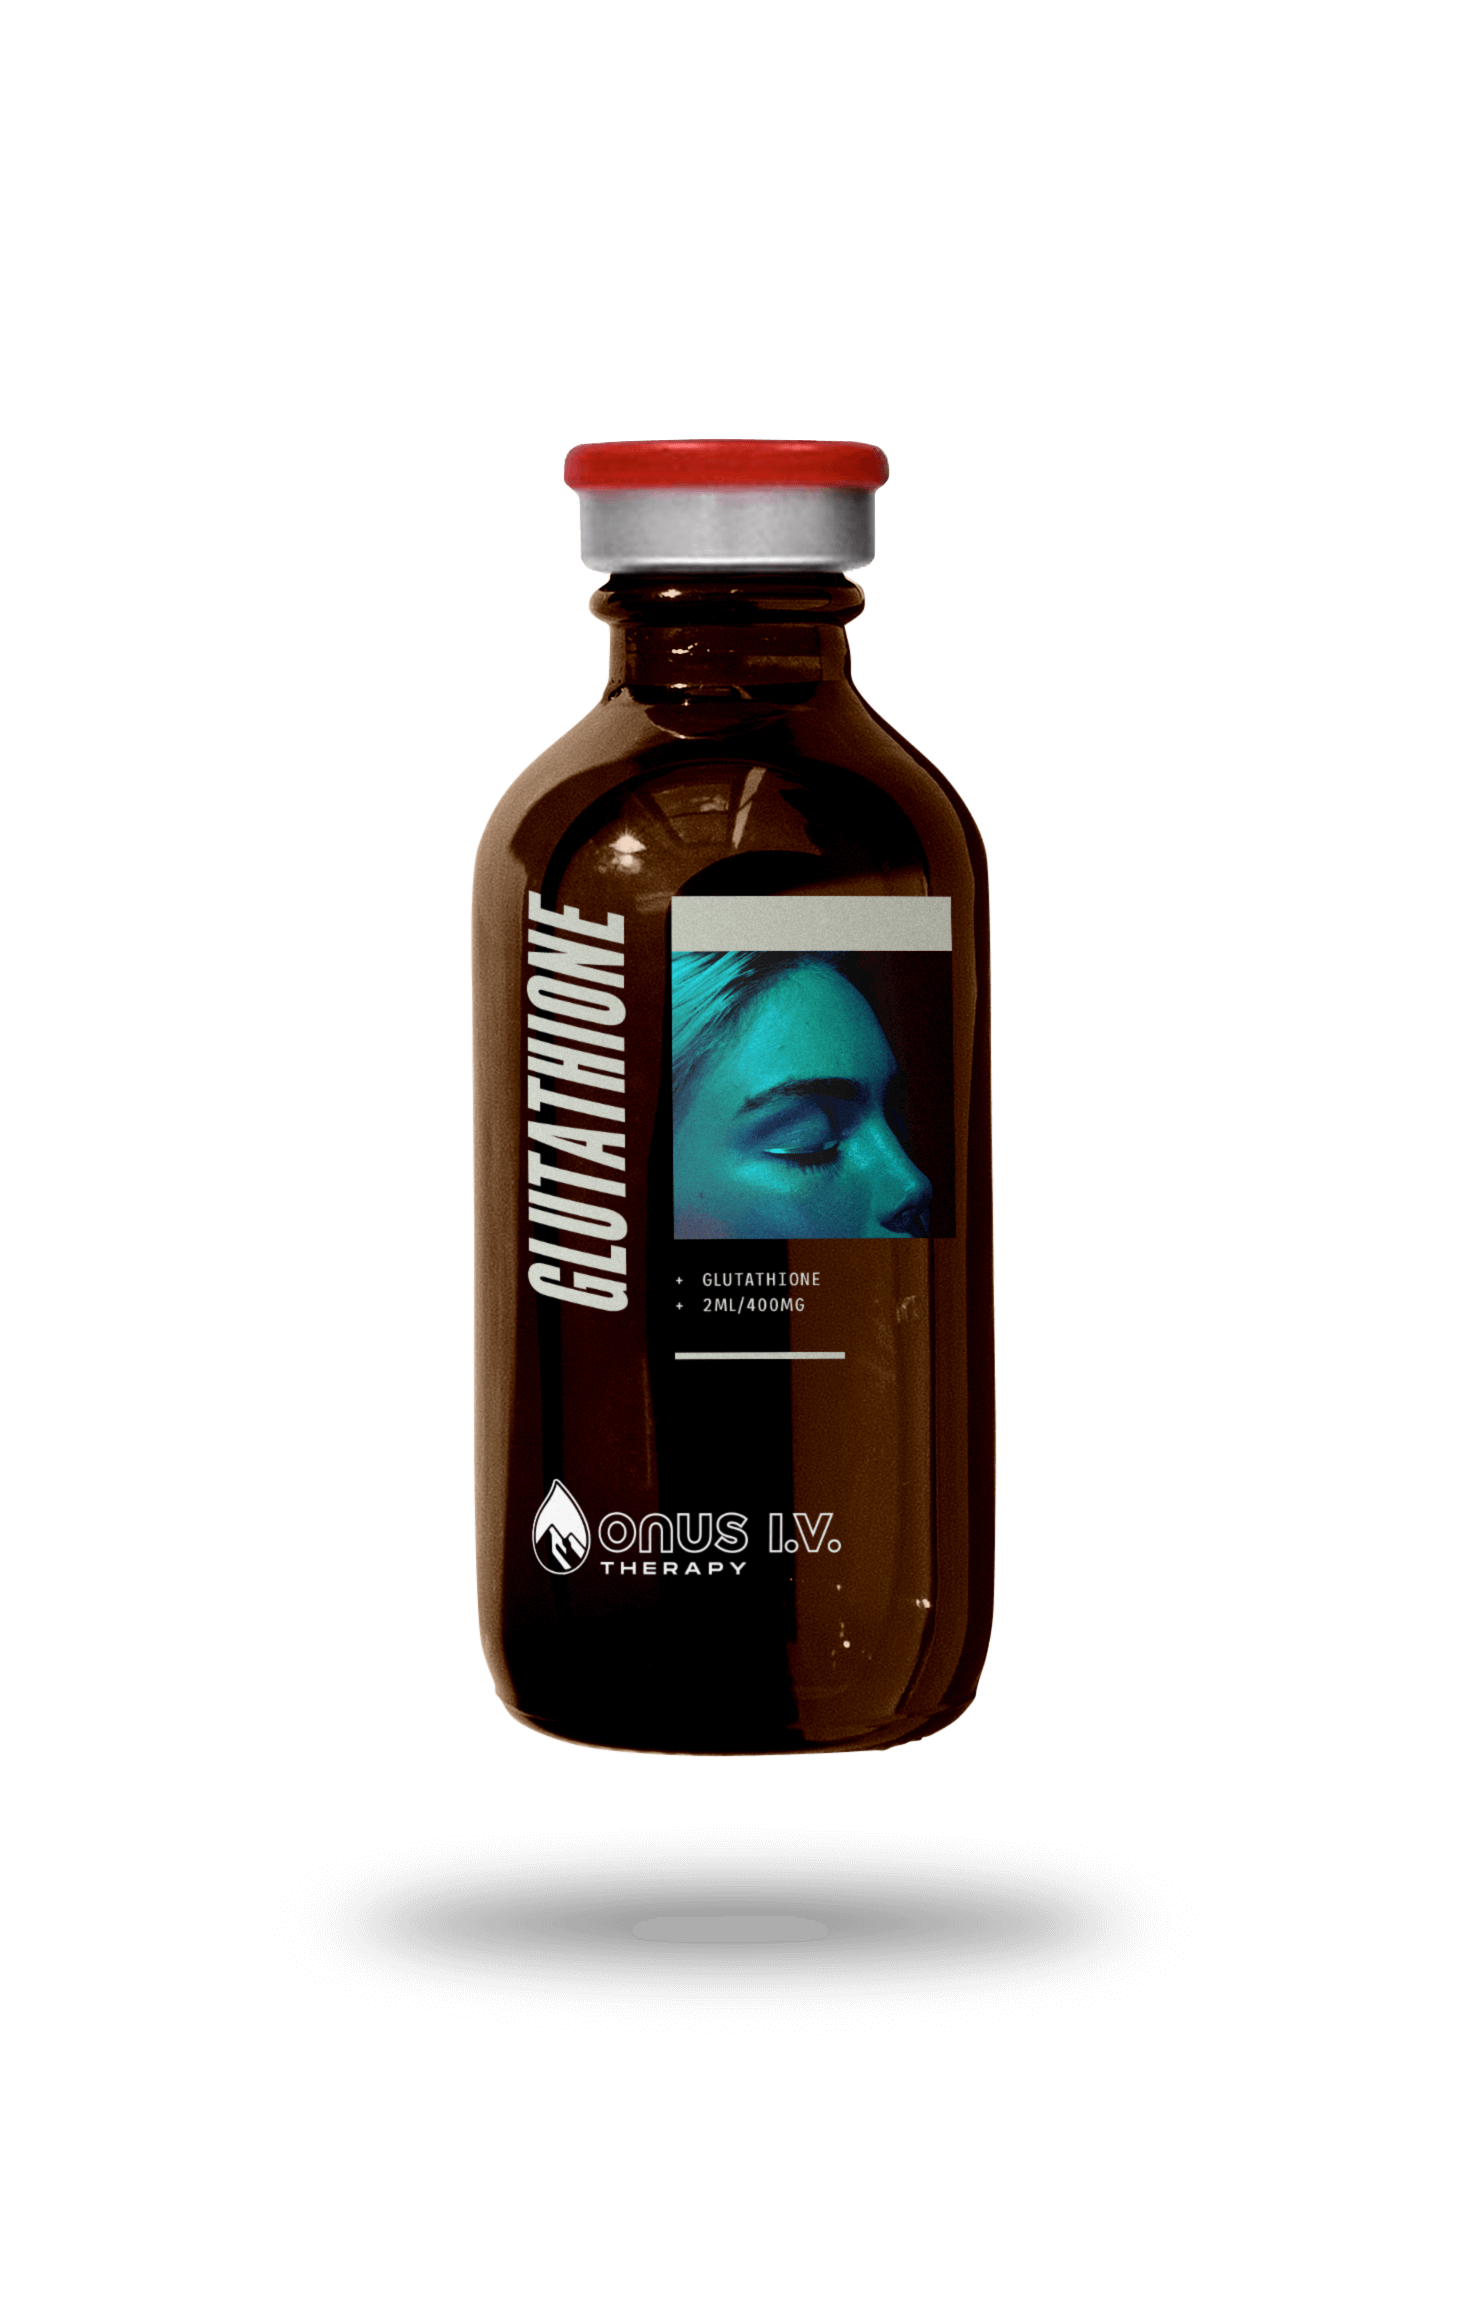 A detoxifying, free-radical-killing Amino Acid produced in your liver, ideal for immunity, beauty & energy.